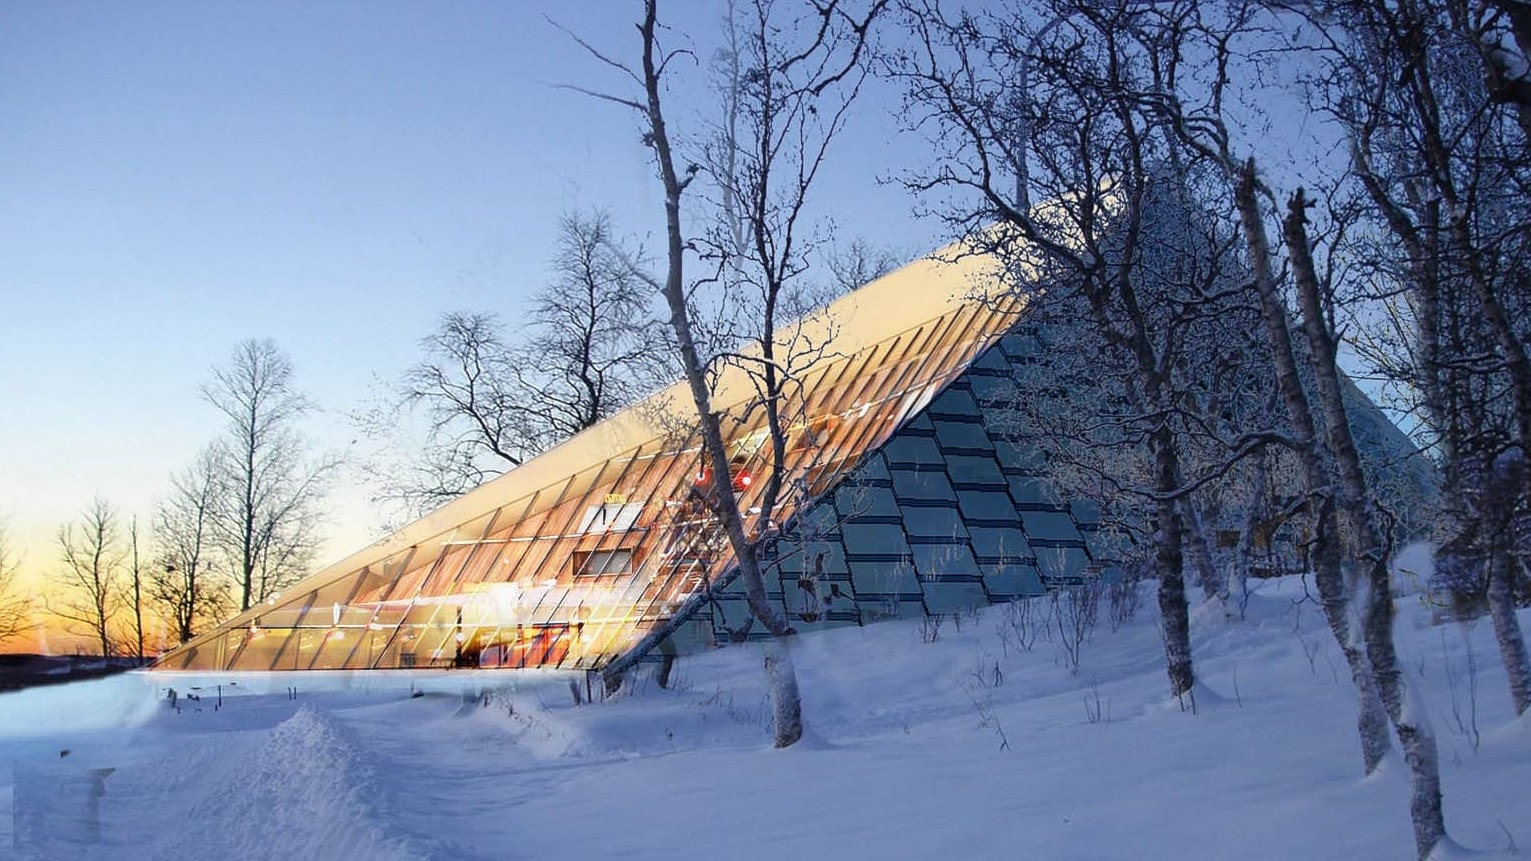 Digital shift at Employment agency, Swedbank external review, Sami Parliament to Östersund, Swedish cross country silver